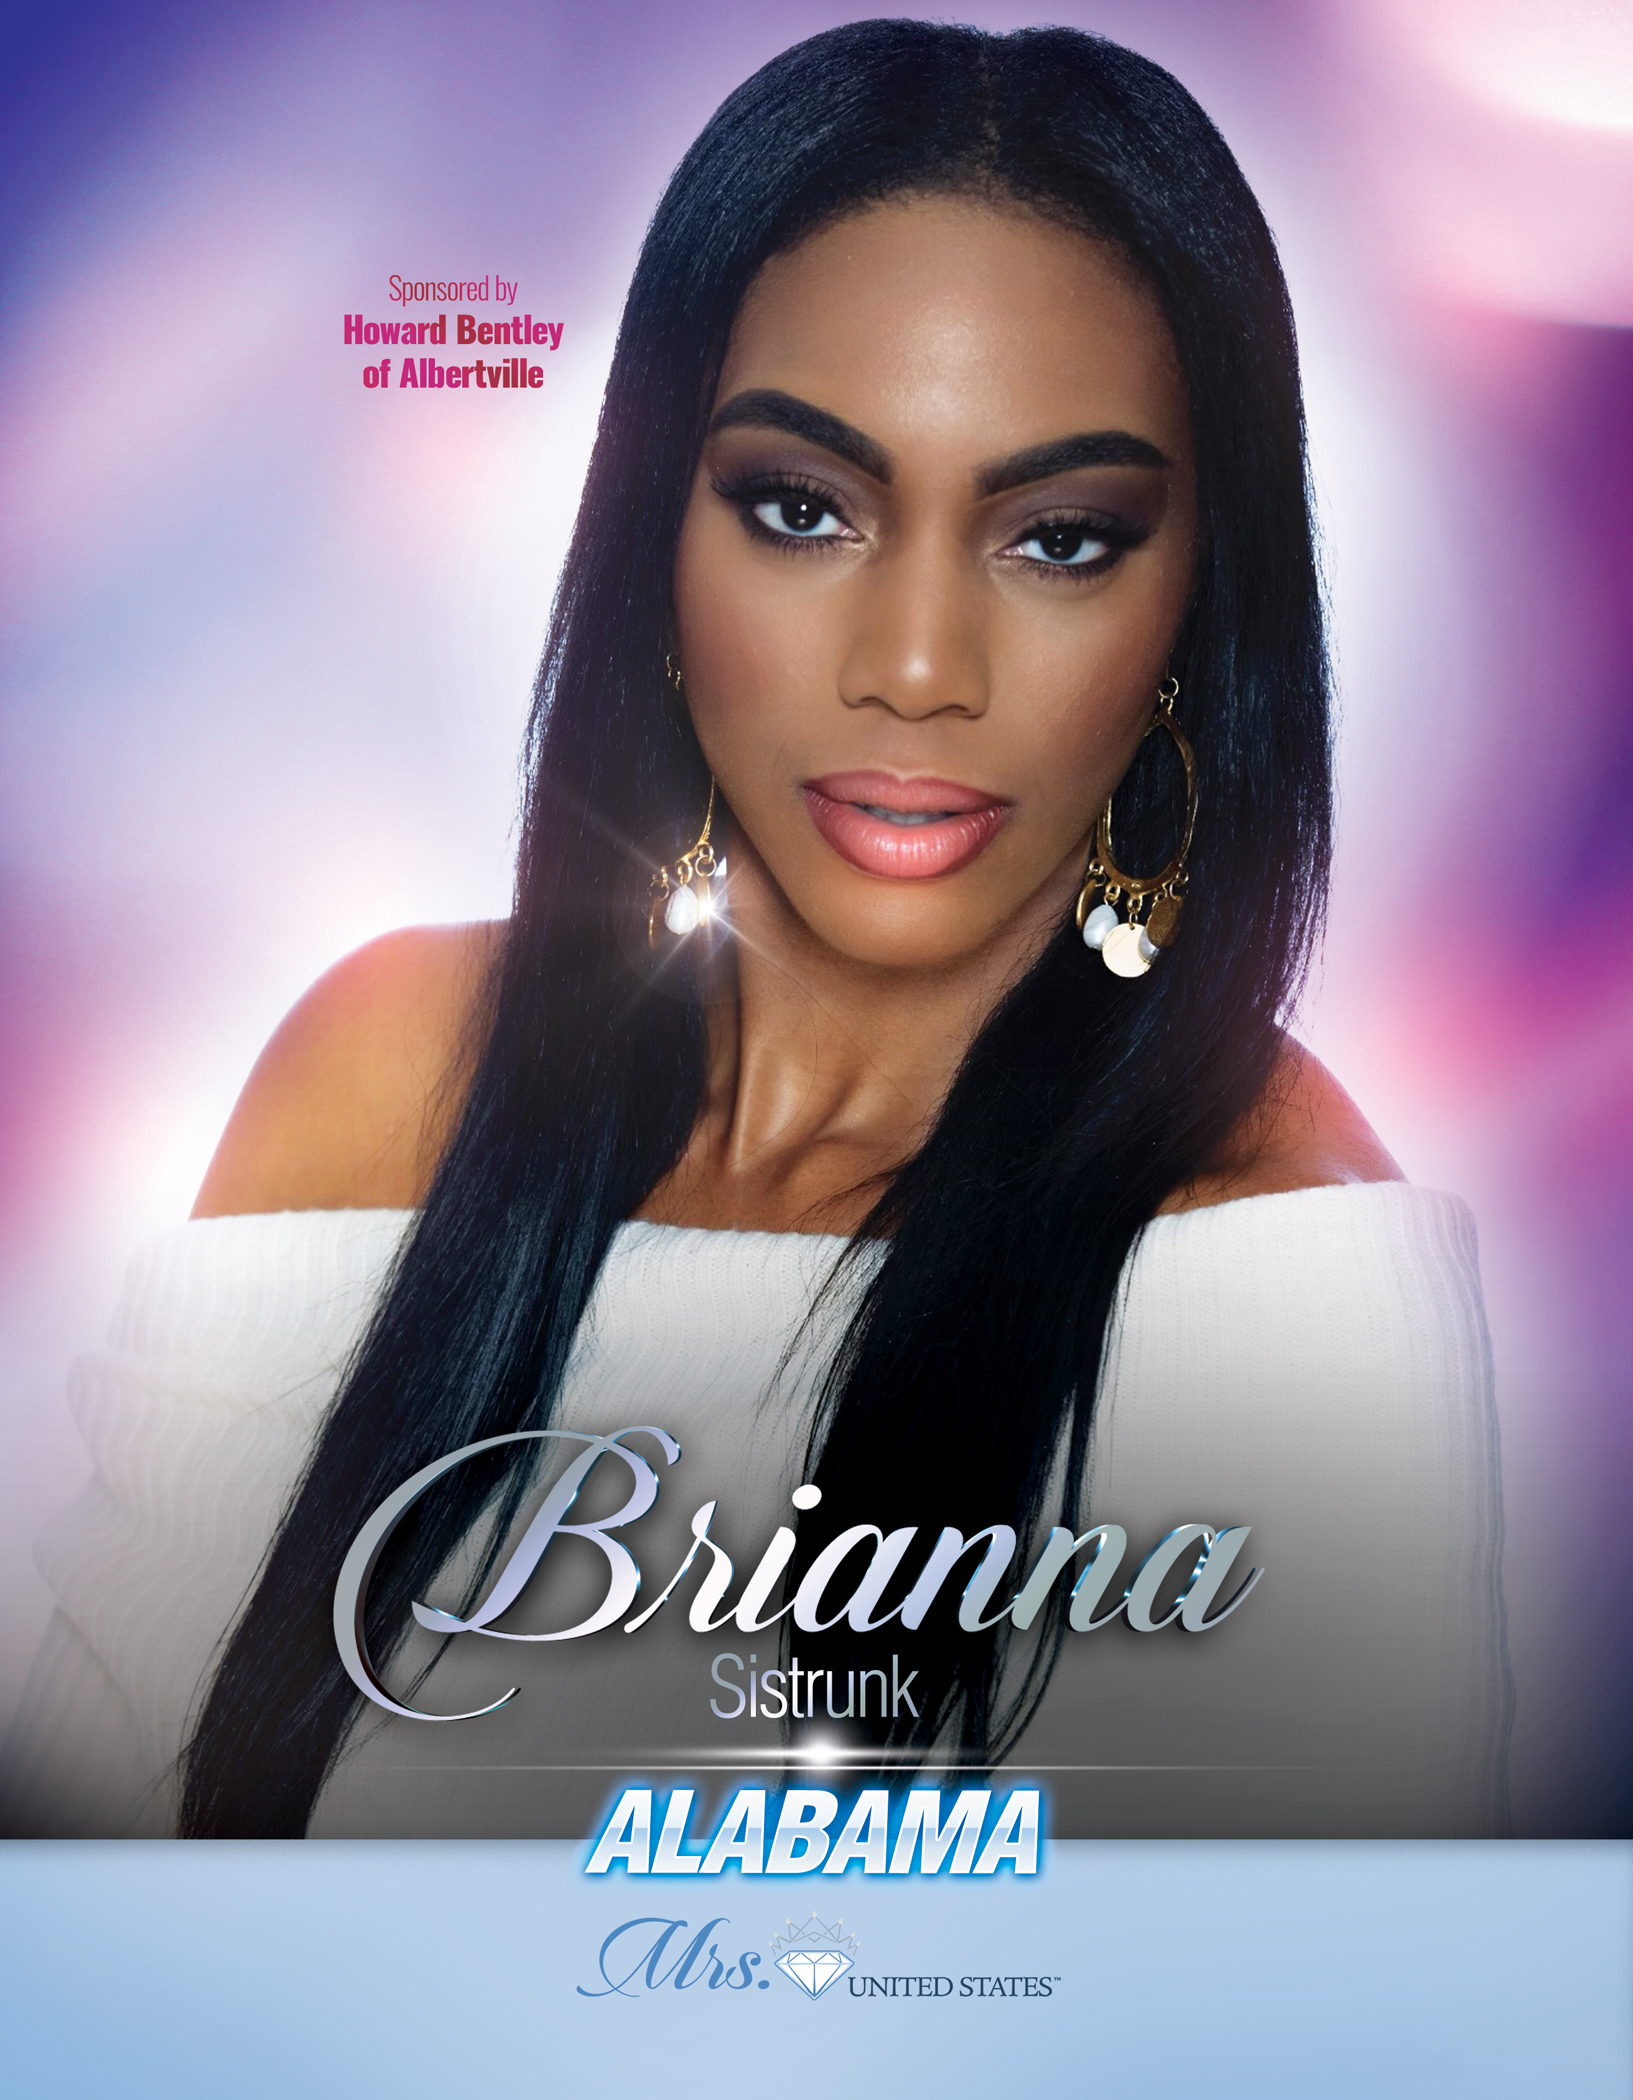 Brianna Sistrunk Mrs. Alabama United States - 2019